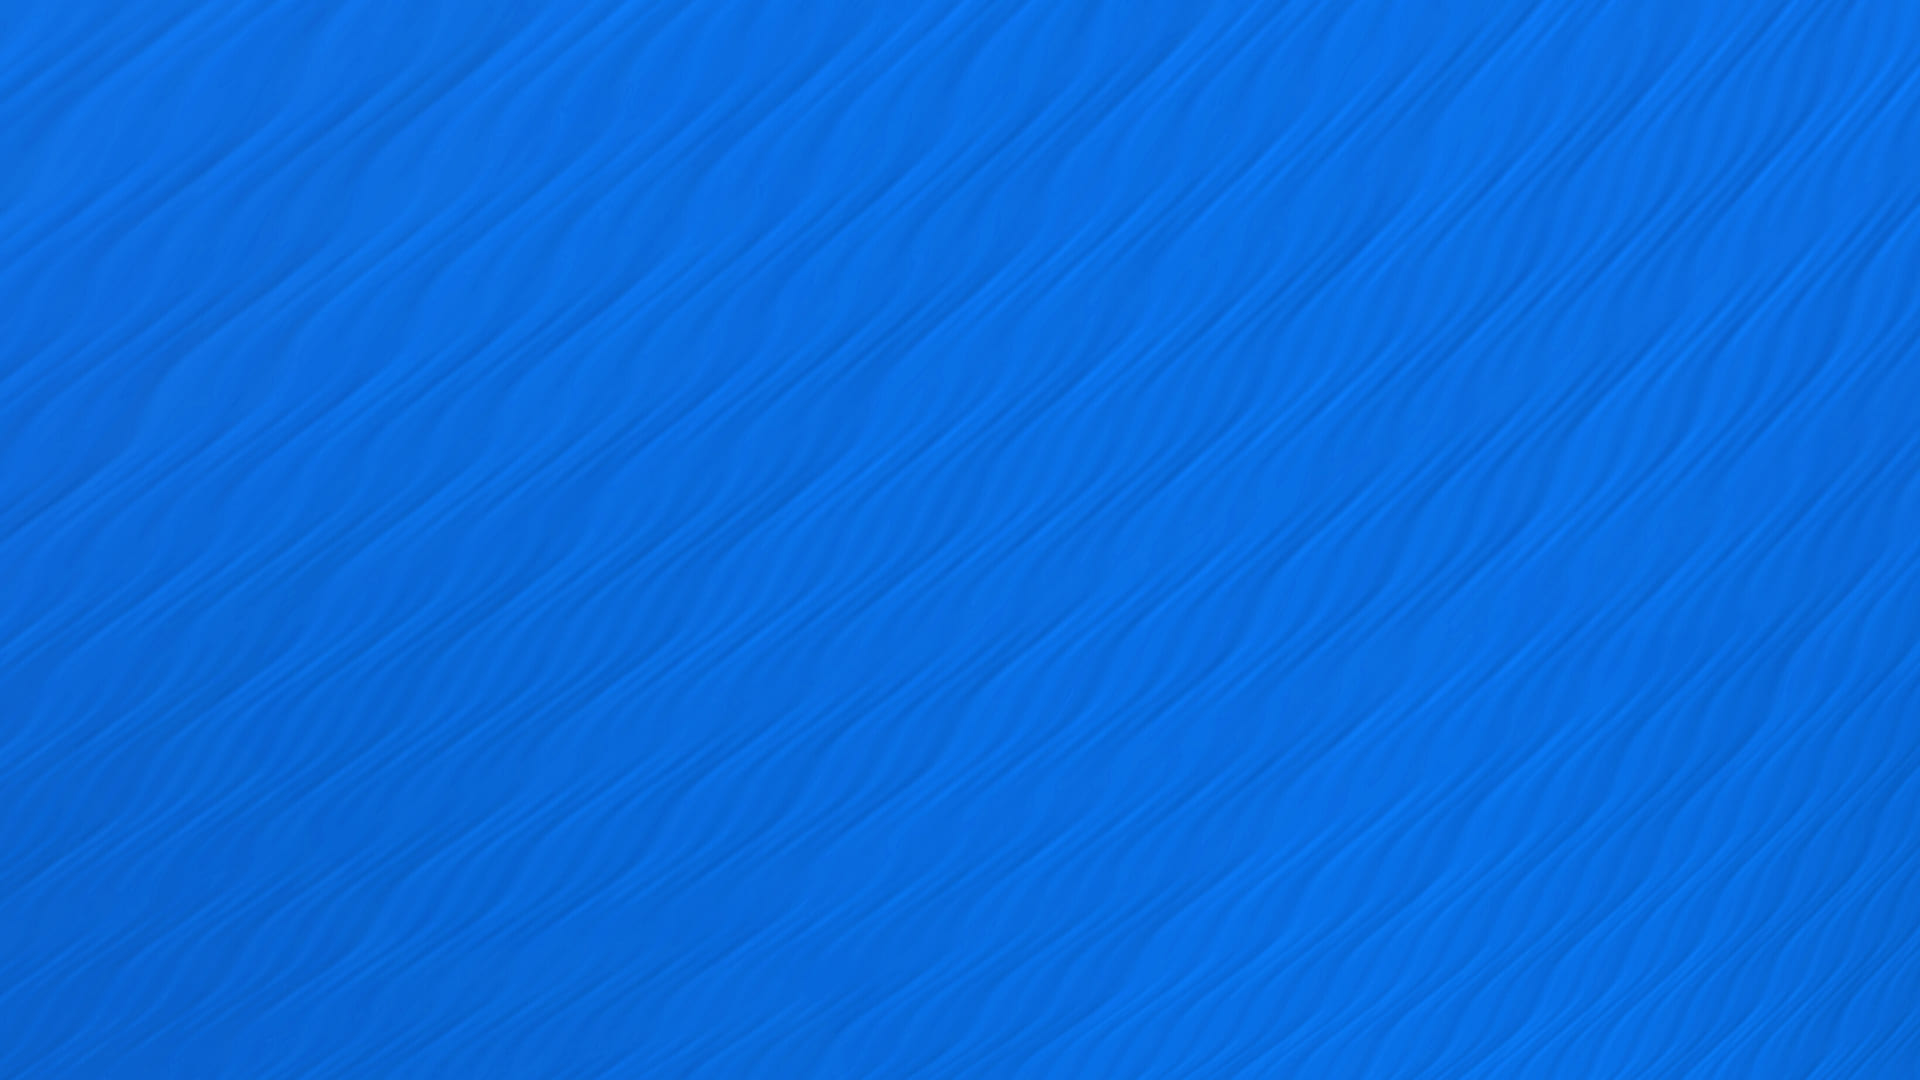 Blue hd backgrounds